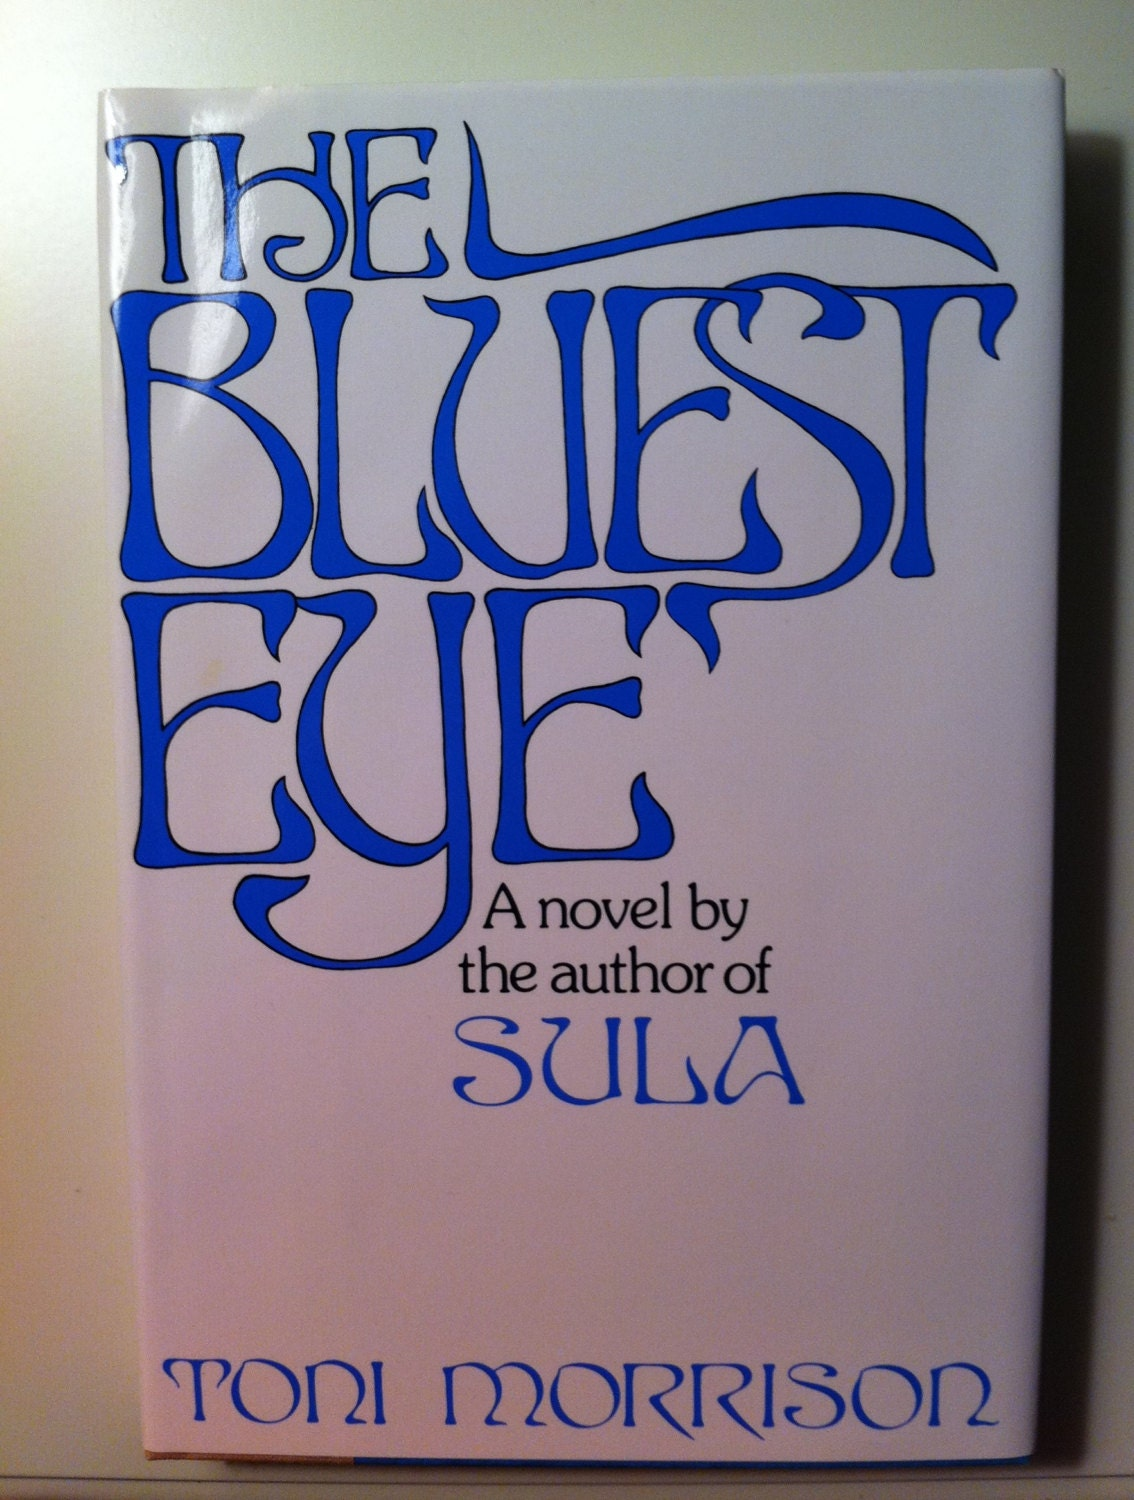 the ugly and the beautiful in toni morrisons book the bluest eye The bluest eye toni morrison snippet stop sure sweet talk teeth tell temple cup things thought told toni morrison touch ugly voice walked book critics circle.